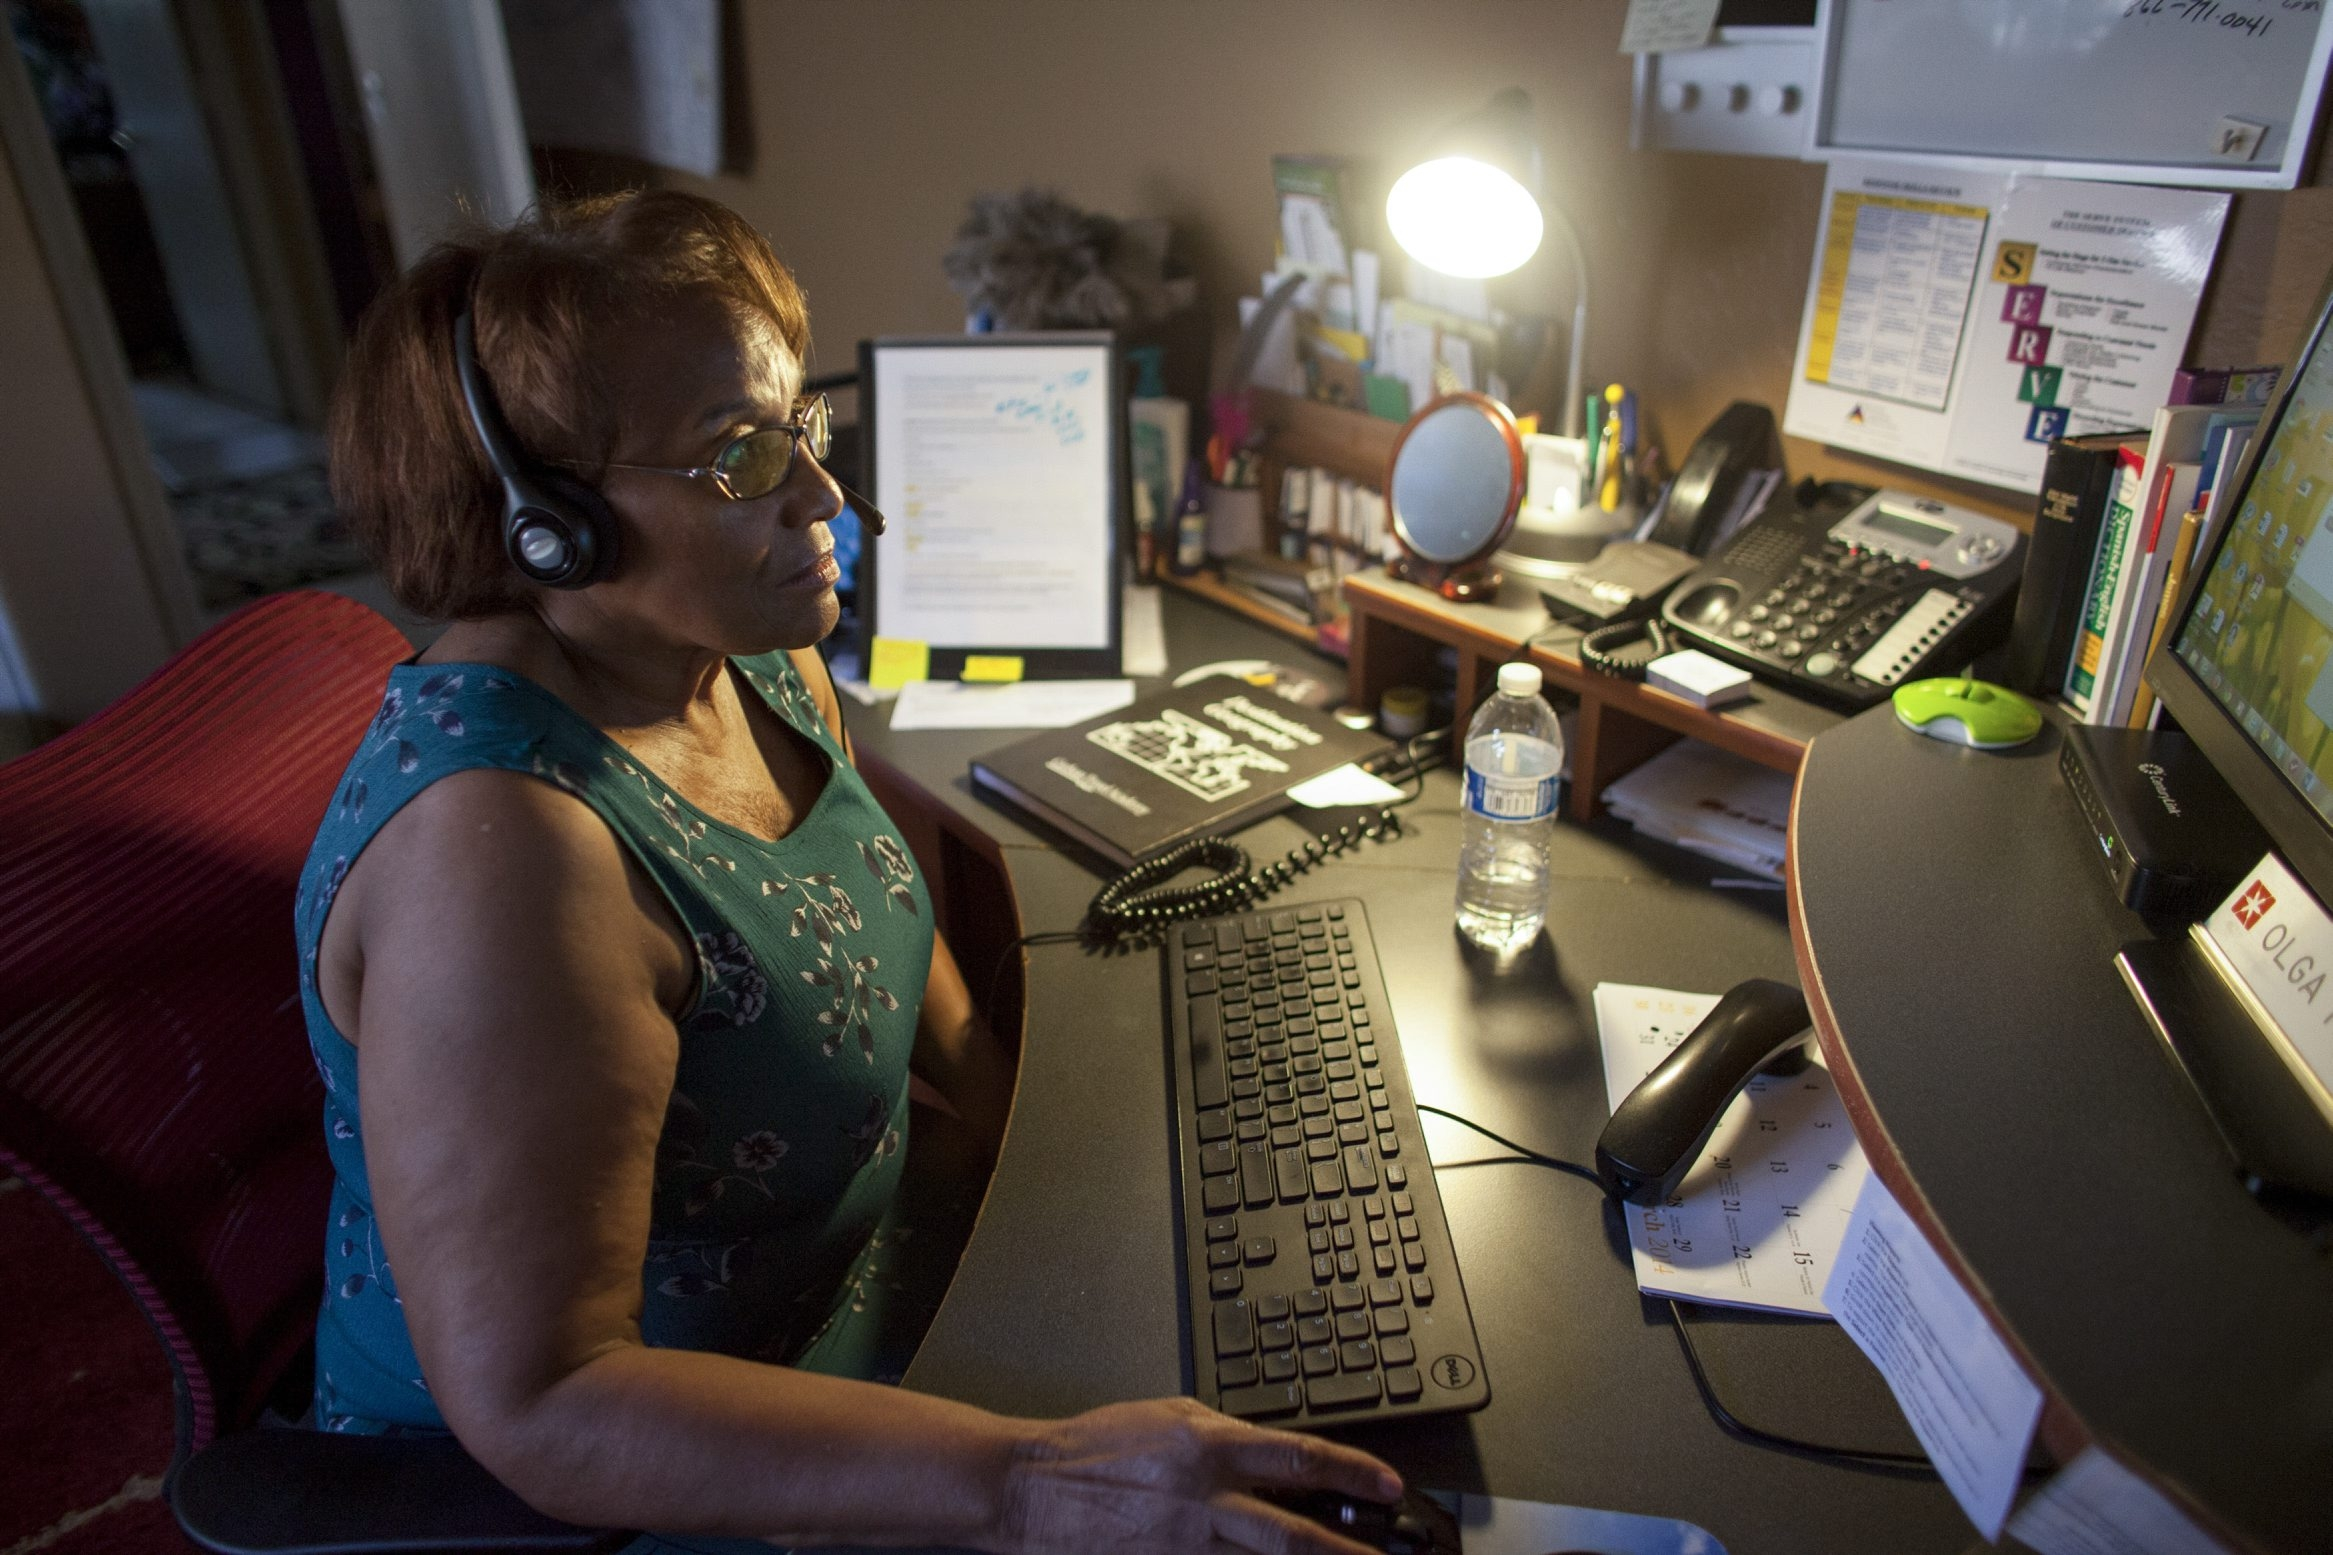 Olga Howard, 71, who works 25 to 30 hours a week from home as a customer service representative, helps a client over the phone in Tolleson, Ariz. The Bureau of Labor Statistics says 24 percent of workers in the U.S. do some or all their work from home.